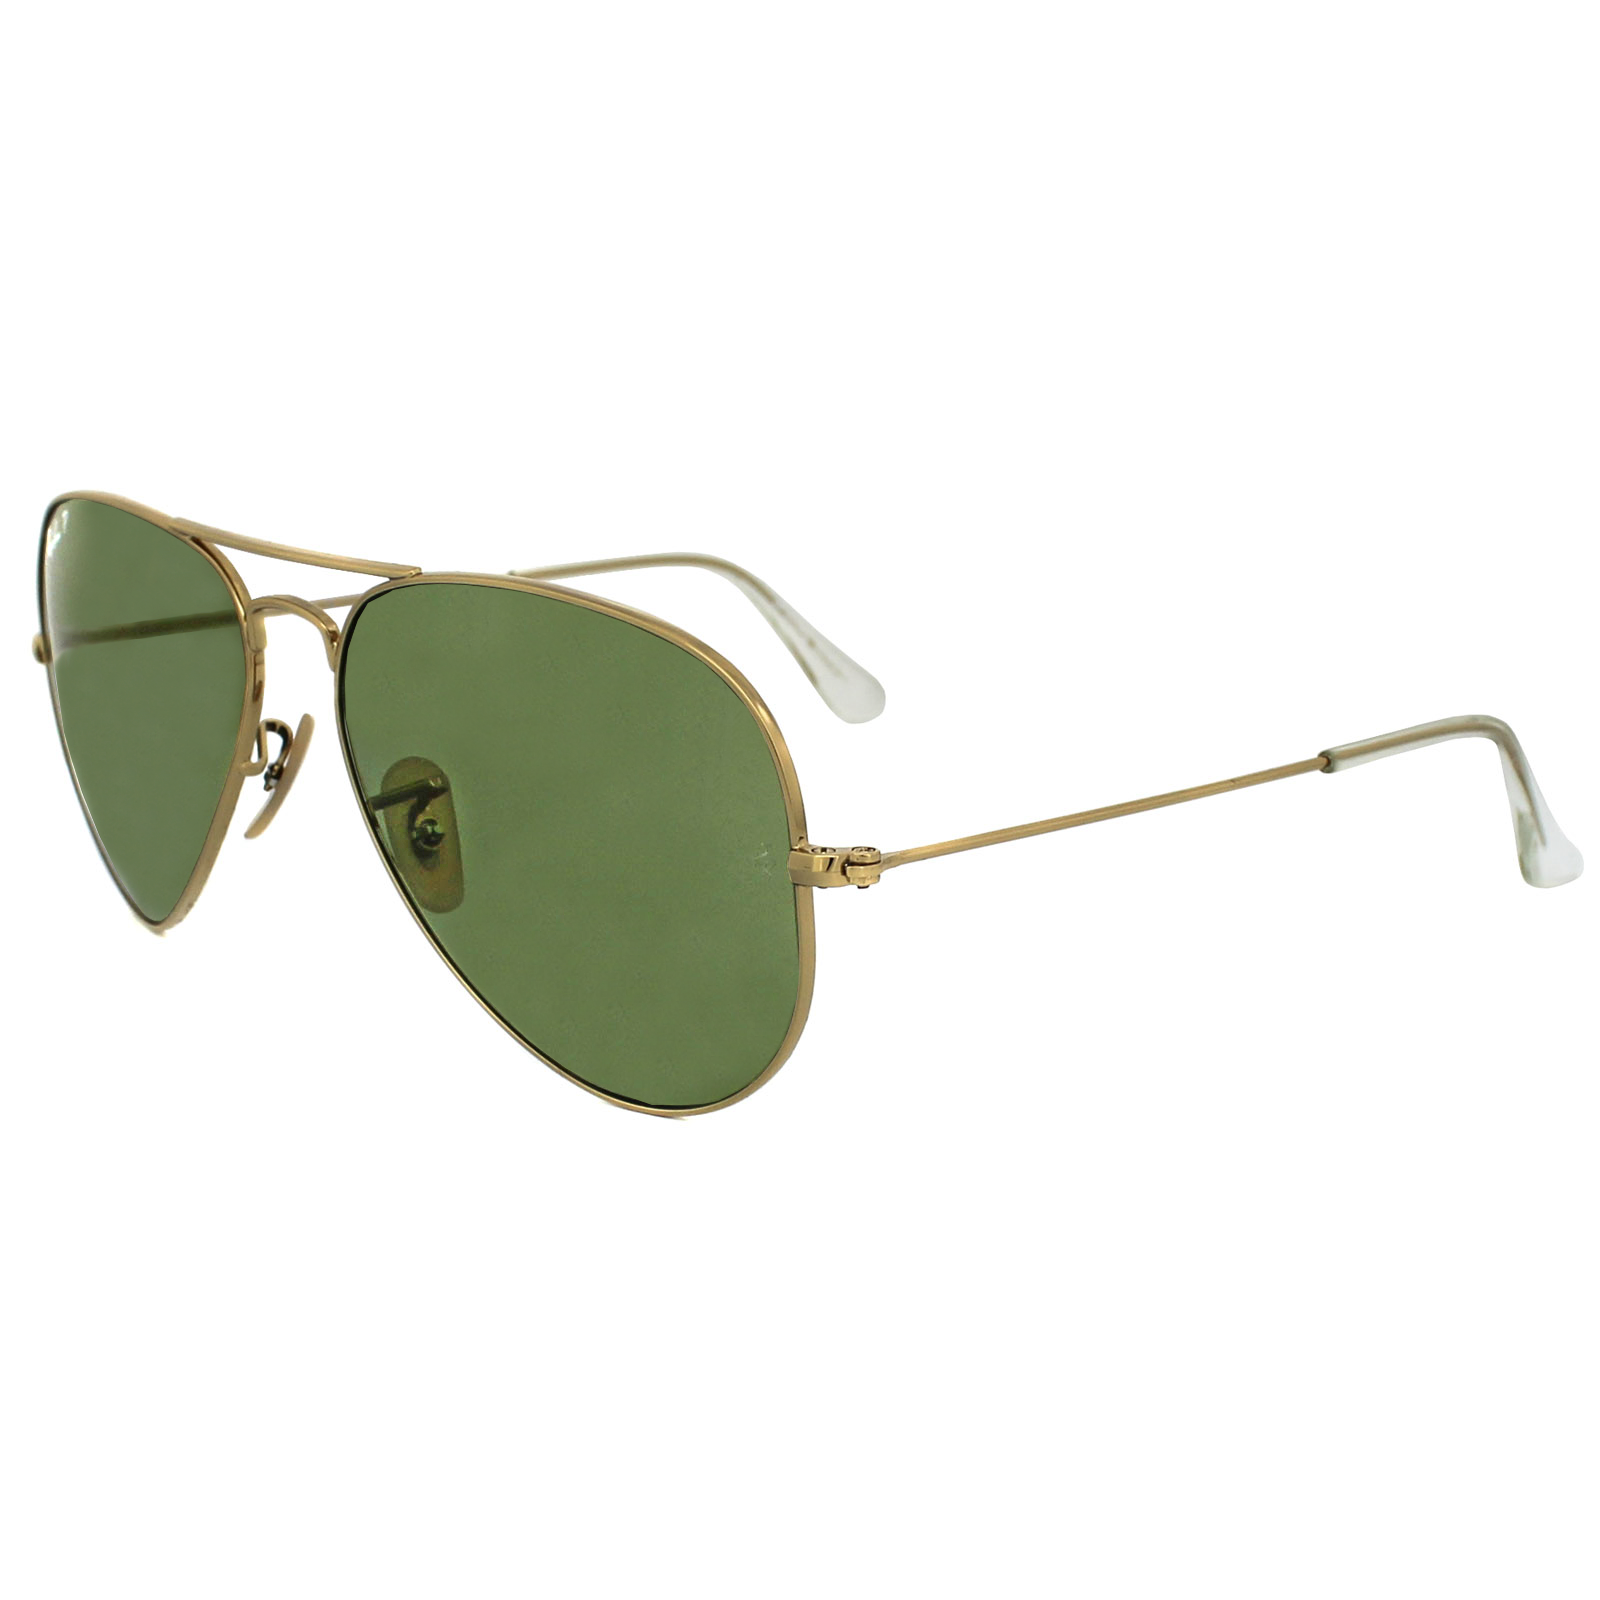 aviator ray ban polarized  Ray-Ban Sunglasses Aviator 3025 001/P1 Shiny Gold Light Green ...